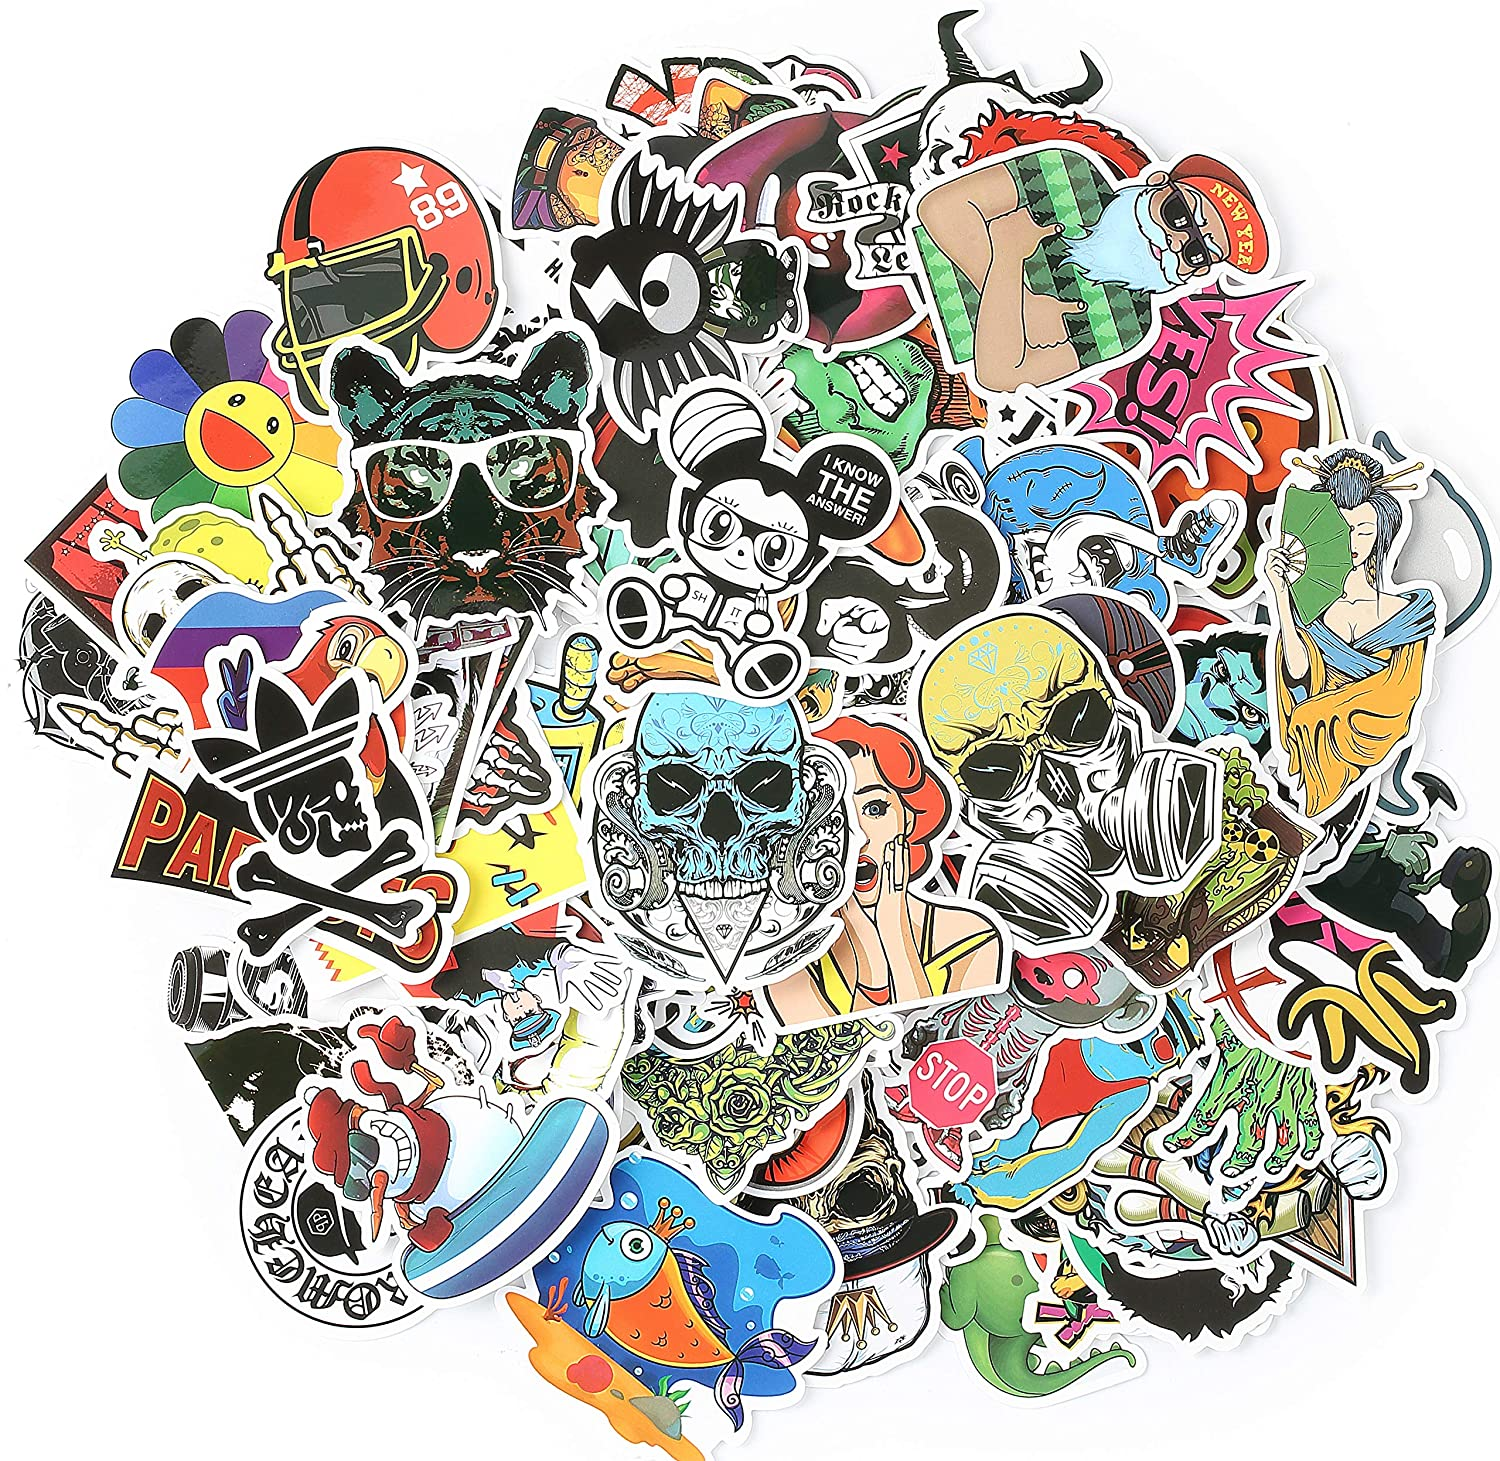 Include 36Pcs//Pack Diamond Animals Style and 35Pcs//Pack Mixed Galaxy Style Luggage,Table,Refrigerator Waterproof Vinyl Decals in All Skateboard 271Pcs Graffiti Stickers for Car Laptop FYZM